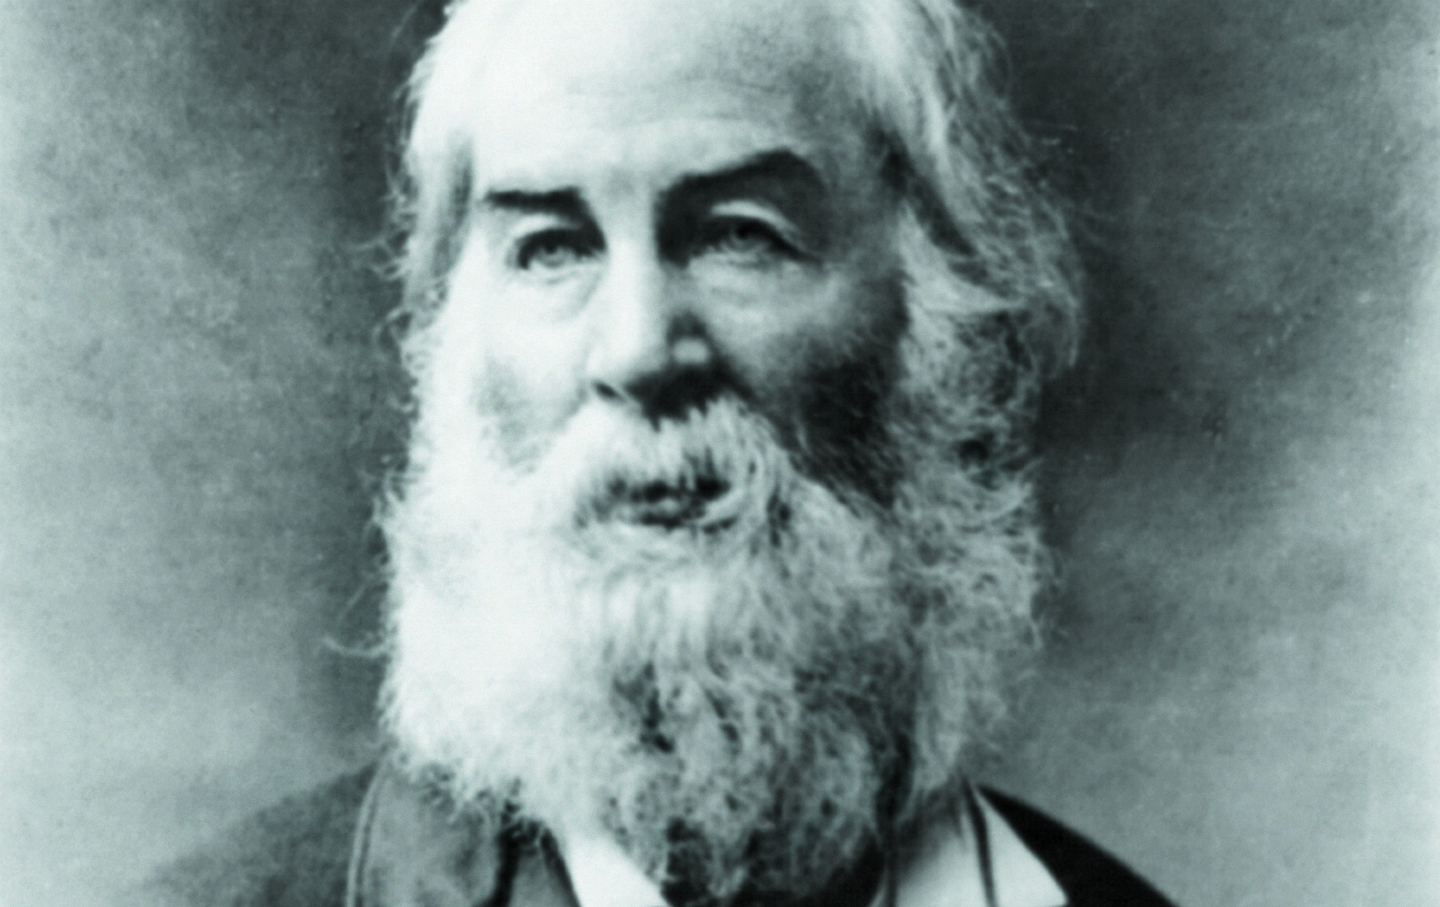 walt whitman is an insult to art says 22 year old henry james the